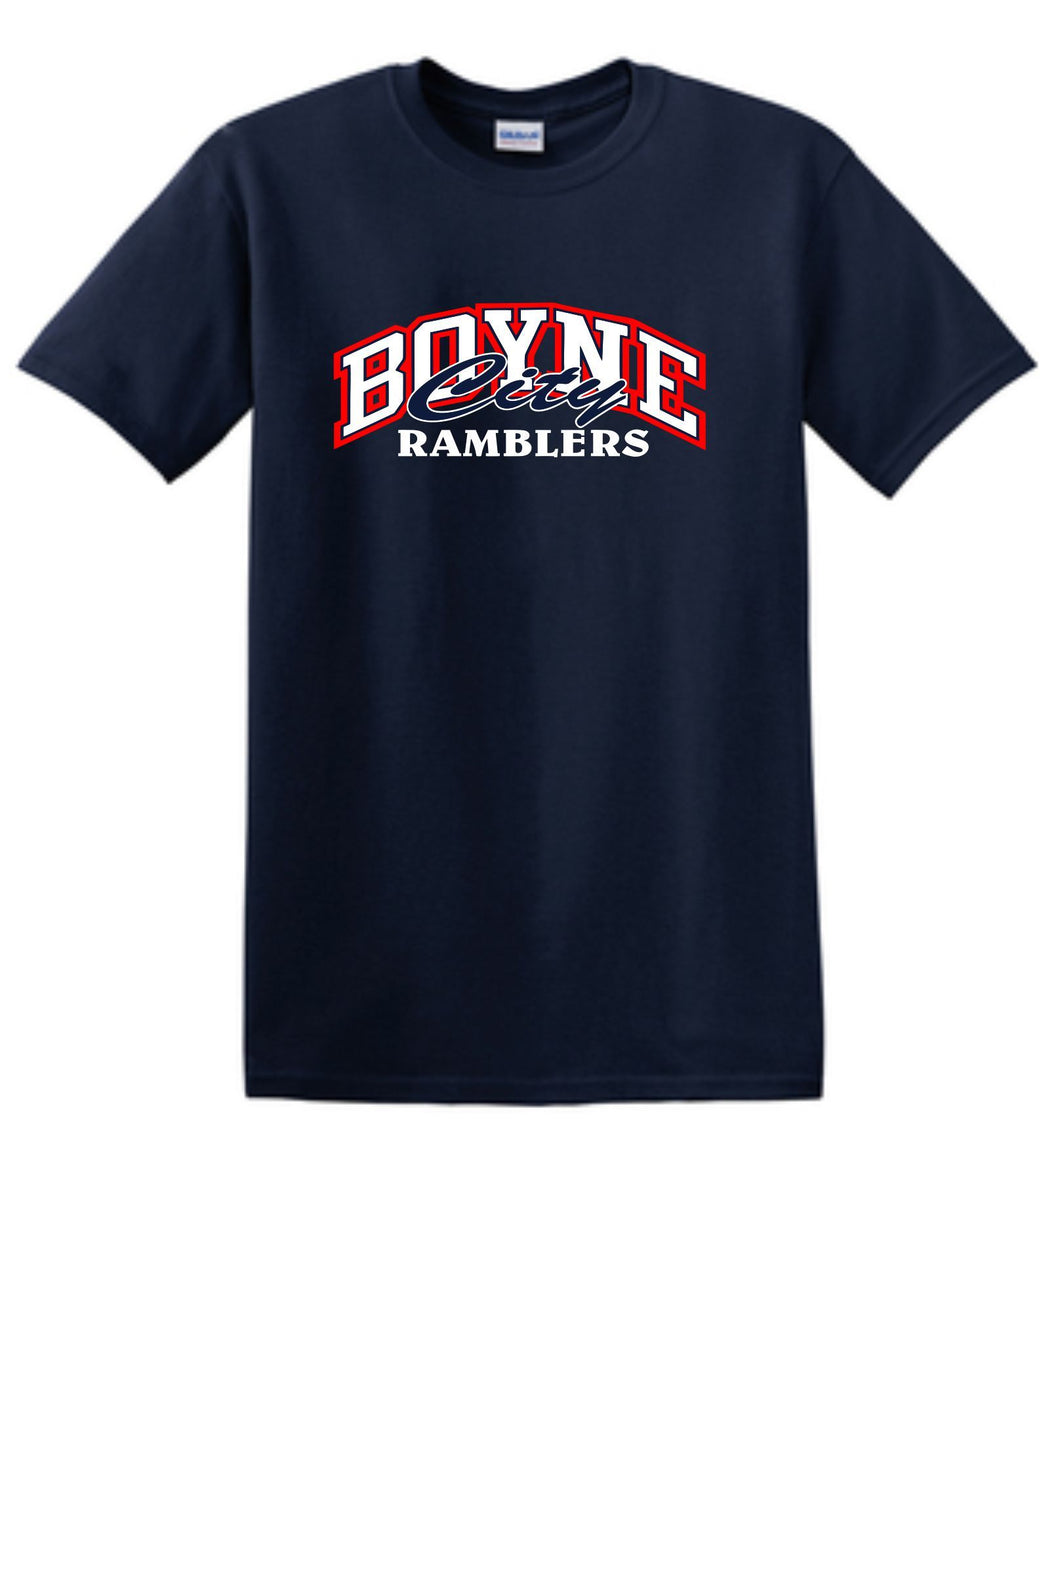 Cotton T-Shirt Traditional Rambler Design